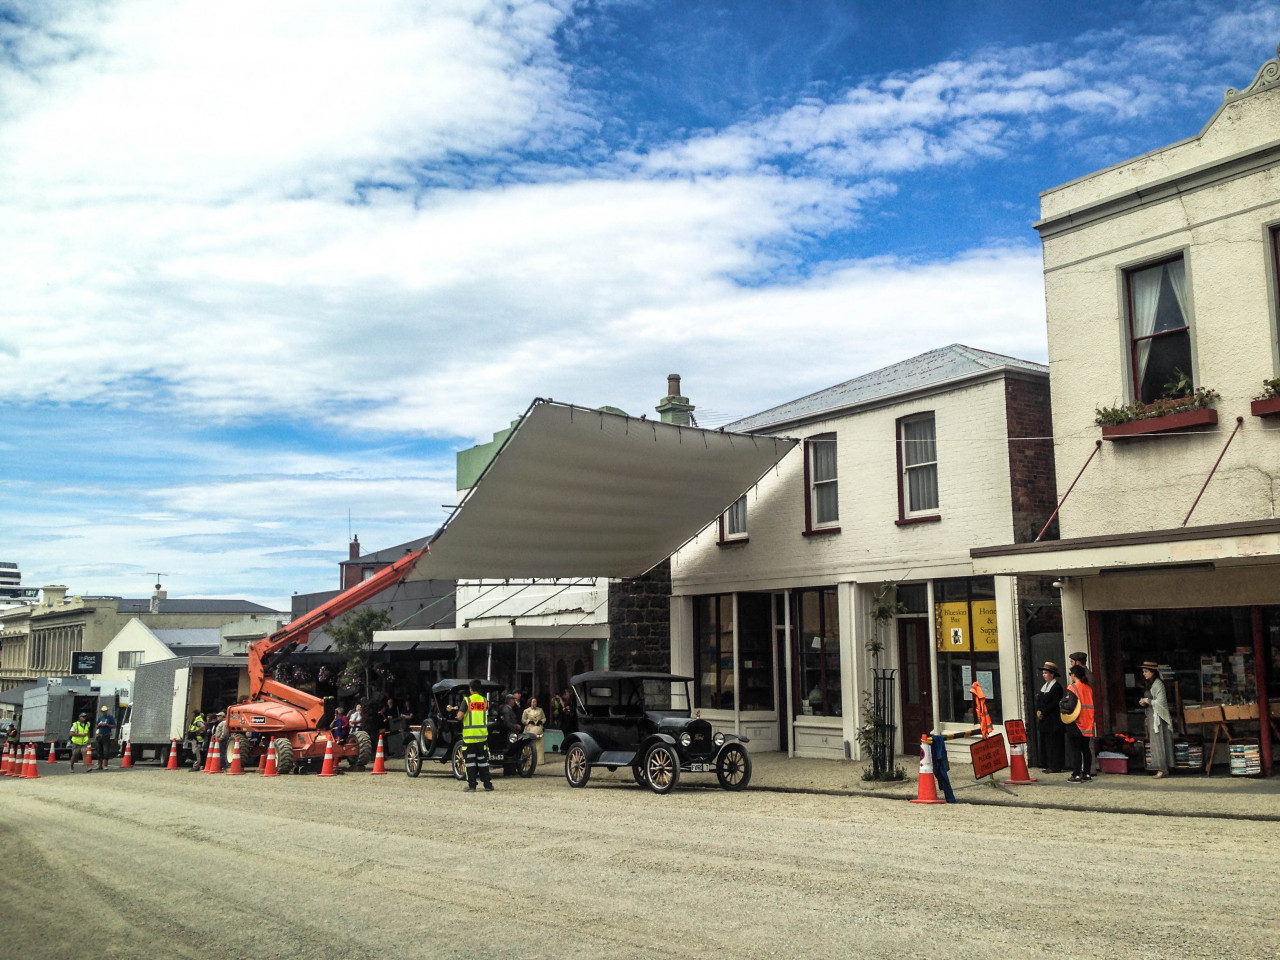 The main street of Port Chalmers during filming.